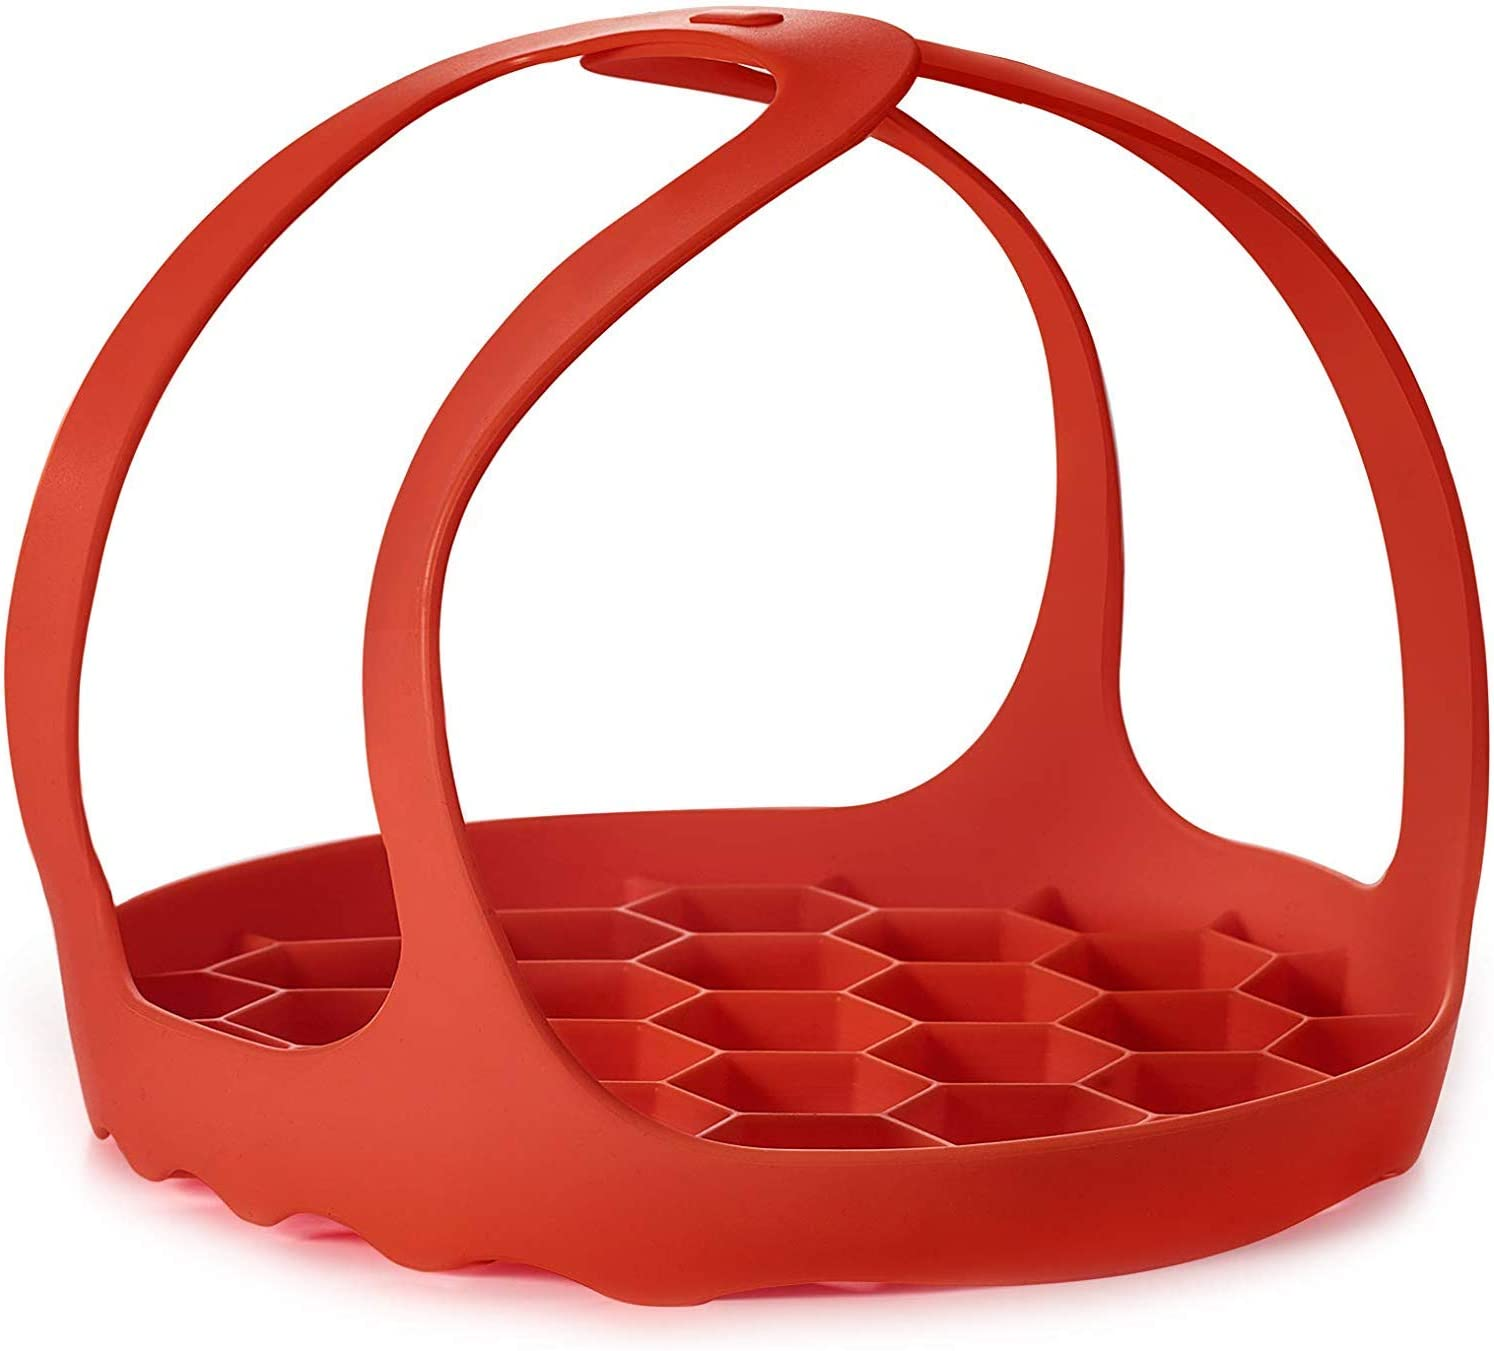 Silicone Trivet For Instant Pot | Fits 6,8 Qt Instapot, Ninja Foodi and Other Pressure Cookers | 3-in-1 - Bakeware Pan Sling Lifter, Egg Rack, and Roasting Rack